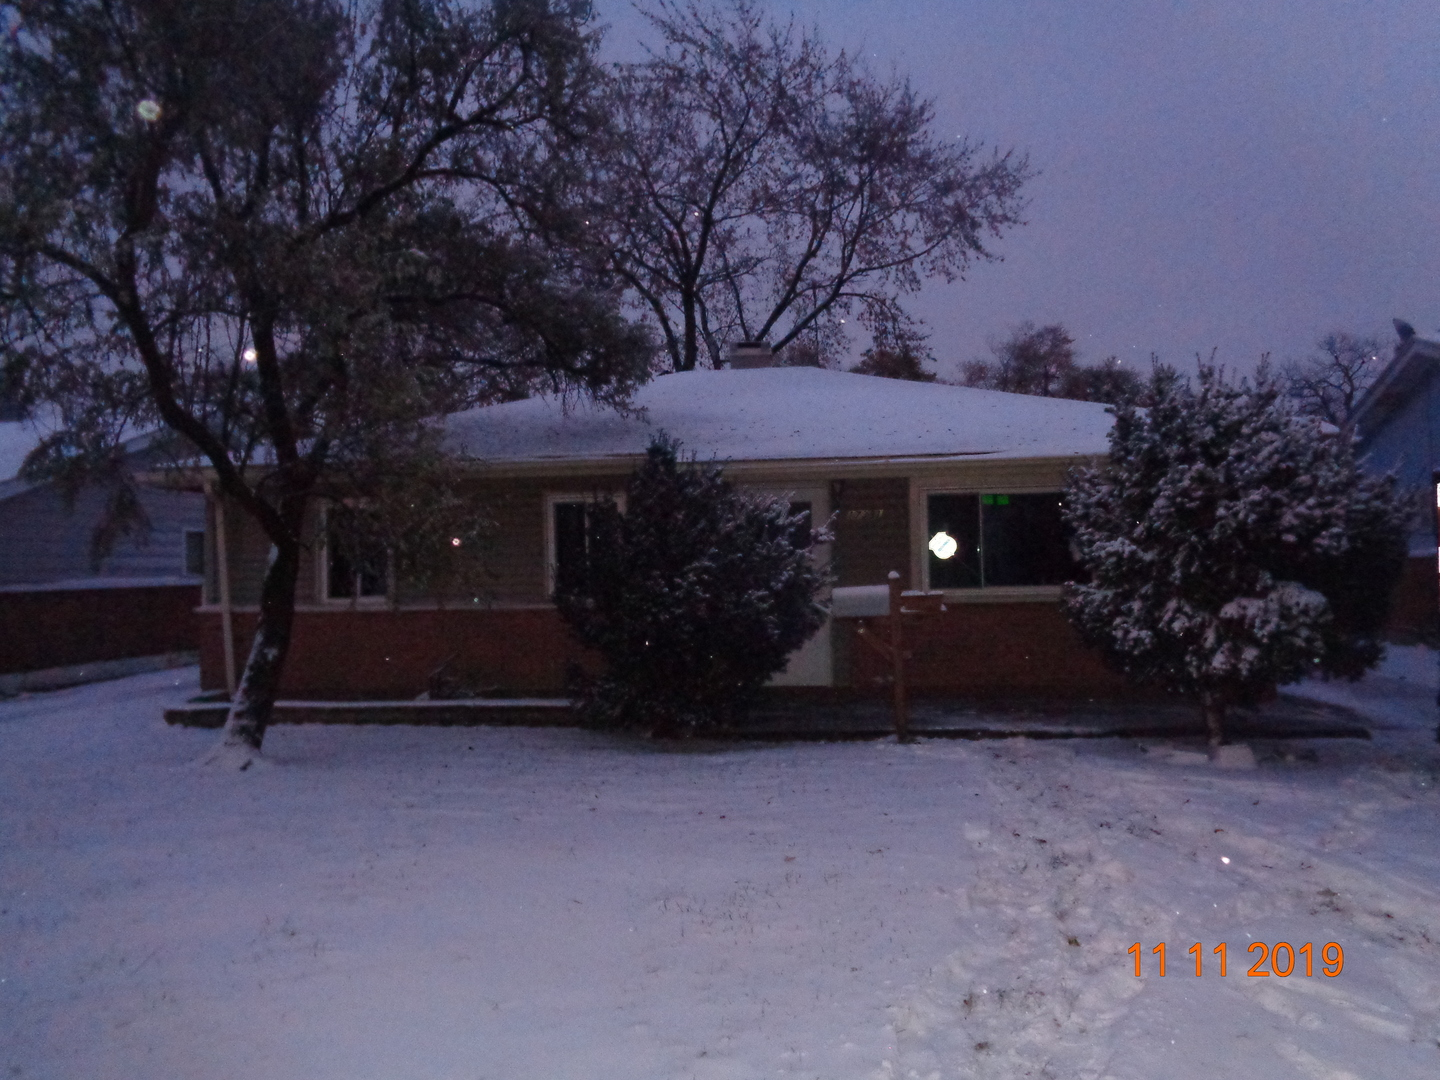 SPACIOUS 3 BEDROOM RANCH  WITH 2 CAR DETACHED GARAGE.  SINGLE FAMILY HOME SOLD AS-IS AND READY FOR A NEW FAMILY.   NOT BANK OWNED AND NOT A SHORT SALE, OWNERS ARE LOCAL AND MOTIVATED.  THIS HOME IS BEING SOLD AS-IS, SO PLEASE INSPECT PRIOR TO SUBMITTING AN OFFER.  PLEASE NOTE: 0% TAX PRORATIONS ARE OFFERED, THE SELLER WILL PAY CURRENT AND ALL PRIOR TAX BUT 0% CREDIT FOR FUTURE BILLS.  SPECIAL WARRANTY DEED AT CLOSING. NO SURVEY.  FOR FASTER RESPONSE PLEASE USE SELLERS CONTRACT, ADDENDUM AND DISCLOSURES UNDER DOCUMENTS.